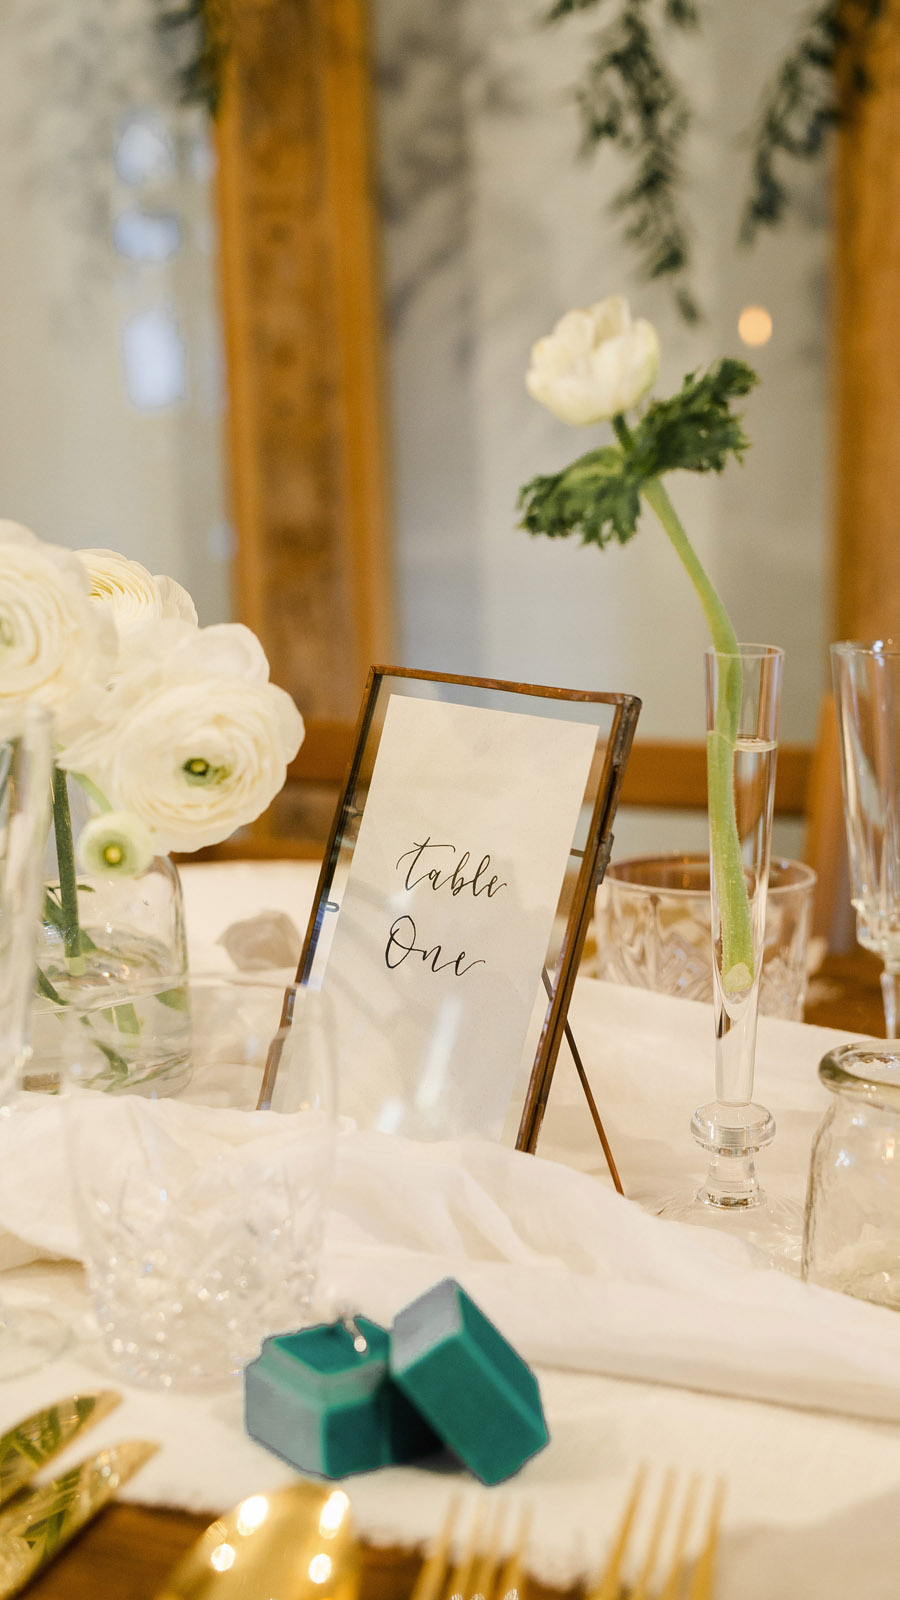 Sustainable, vegan and organic wedding styling ideas from the UK (20)